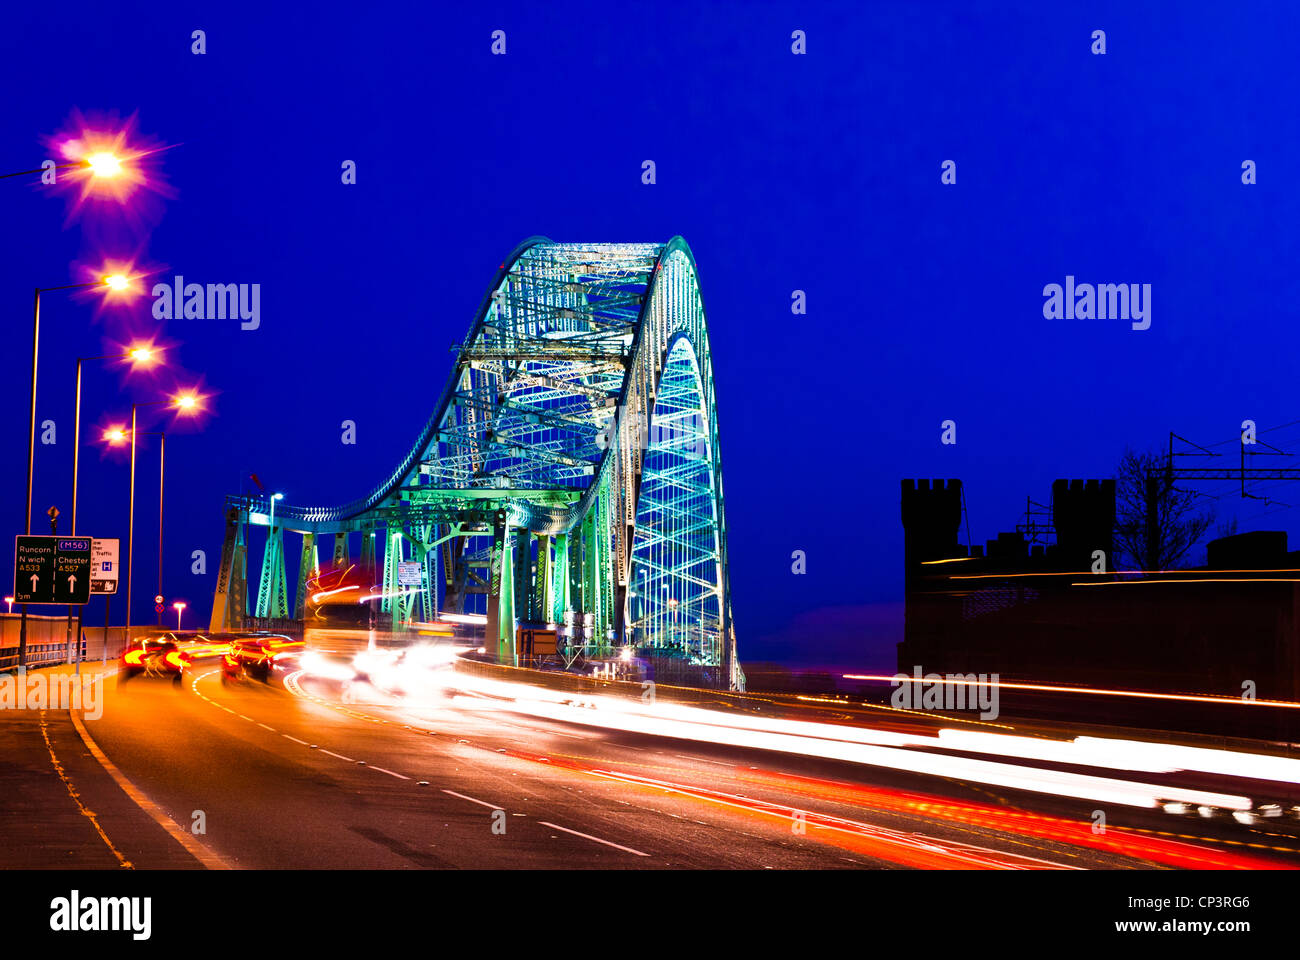 Car traffic light trails crossing The Silver Jubilee Bridge, Runcorn at night, Cheshire, England, UK - Stock Image